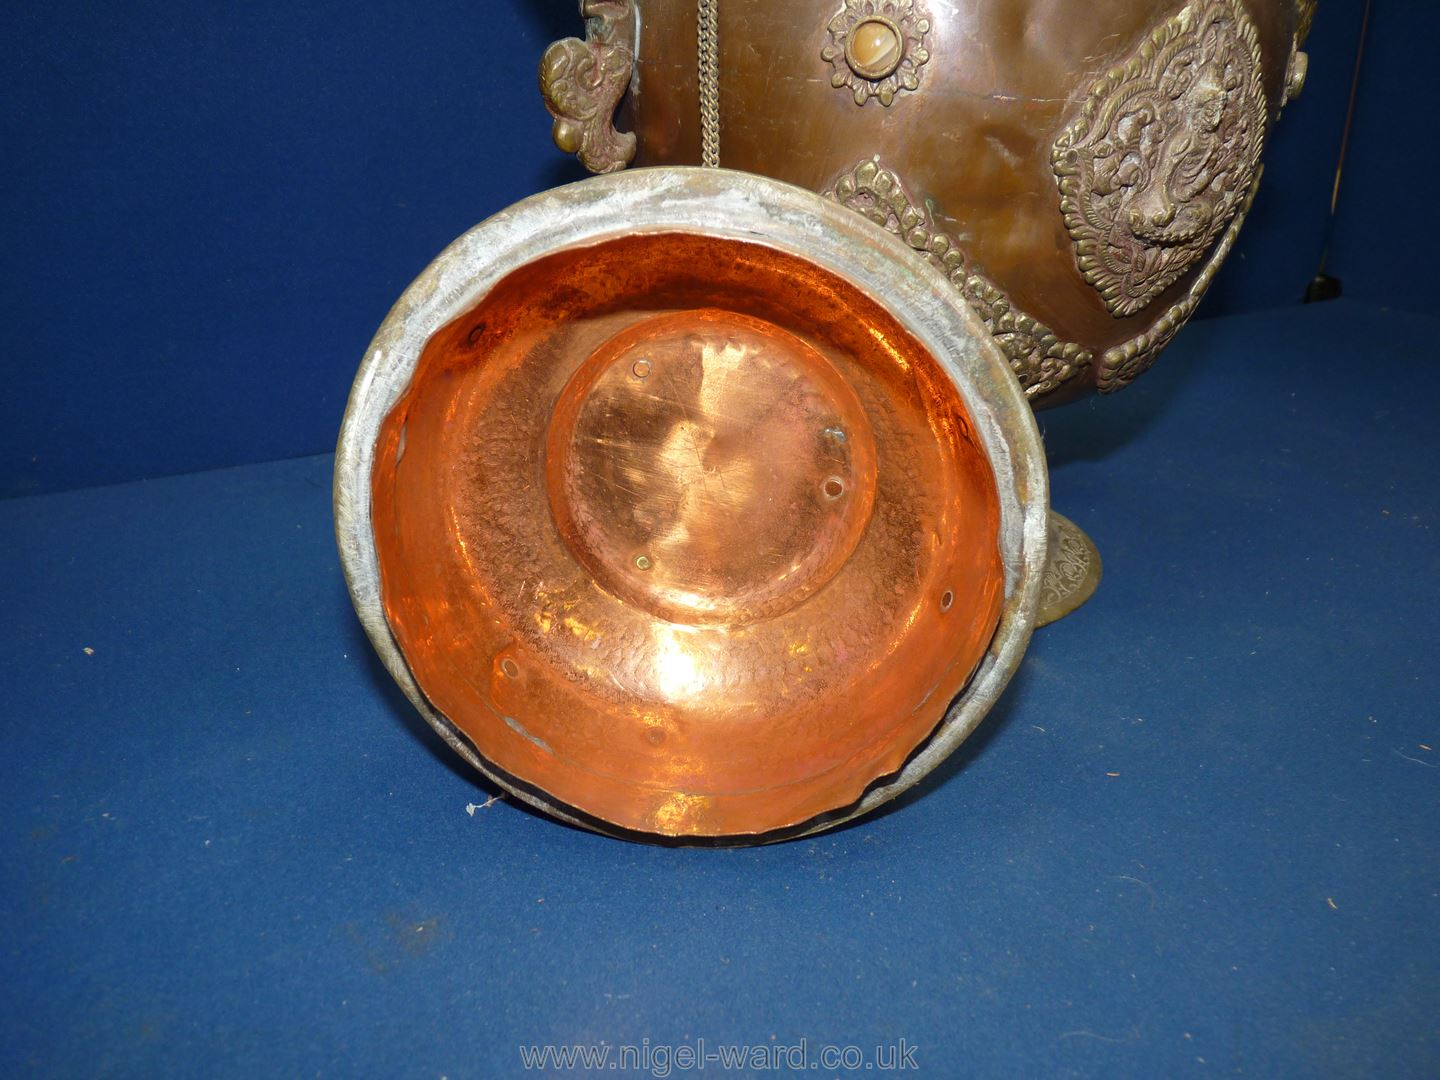 A Tibetan copper and brass ceremonial Dragon ewer with dragon handles and spout, - Image 7 of 9